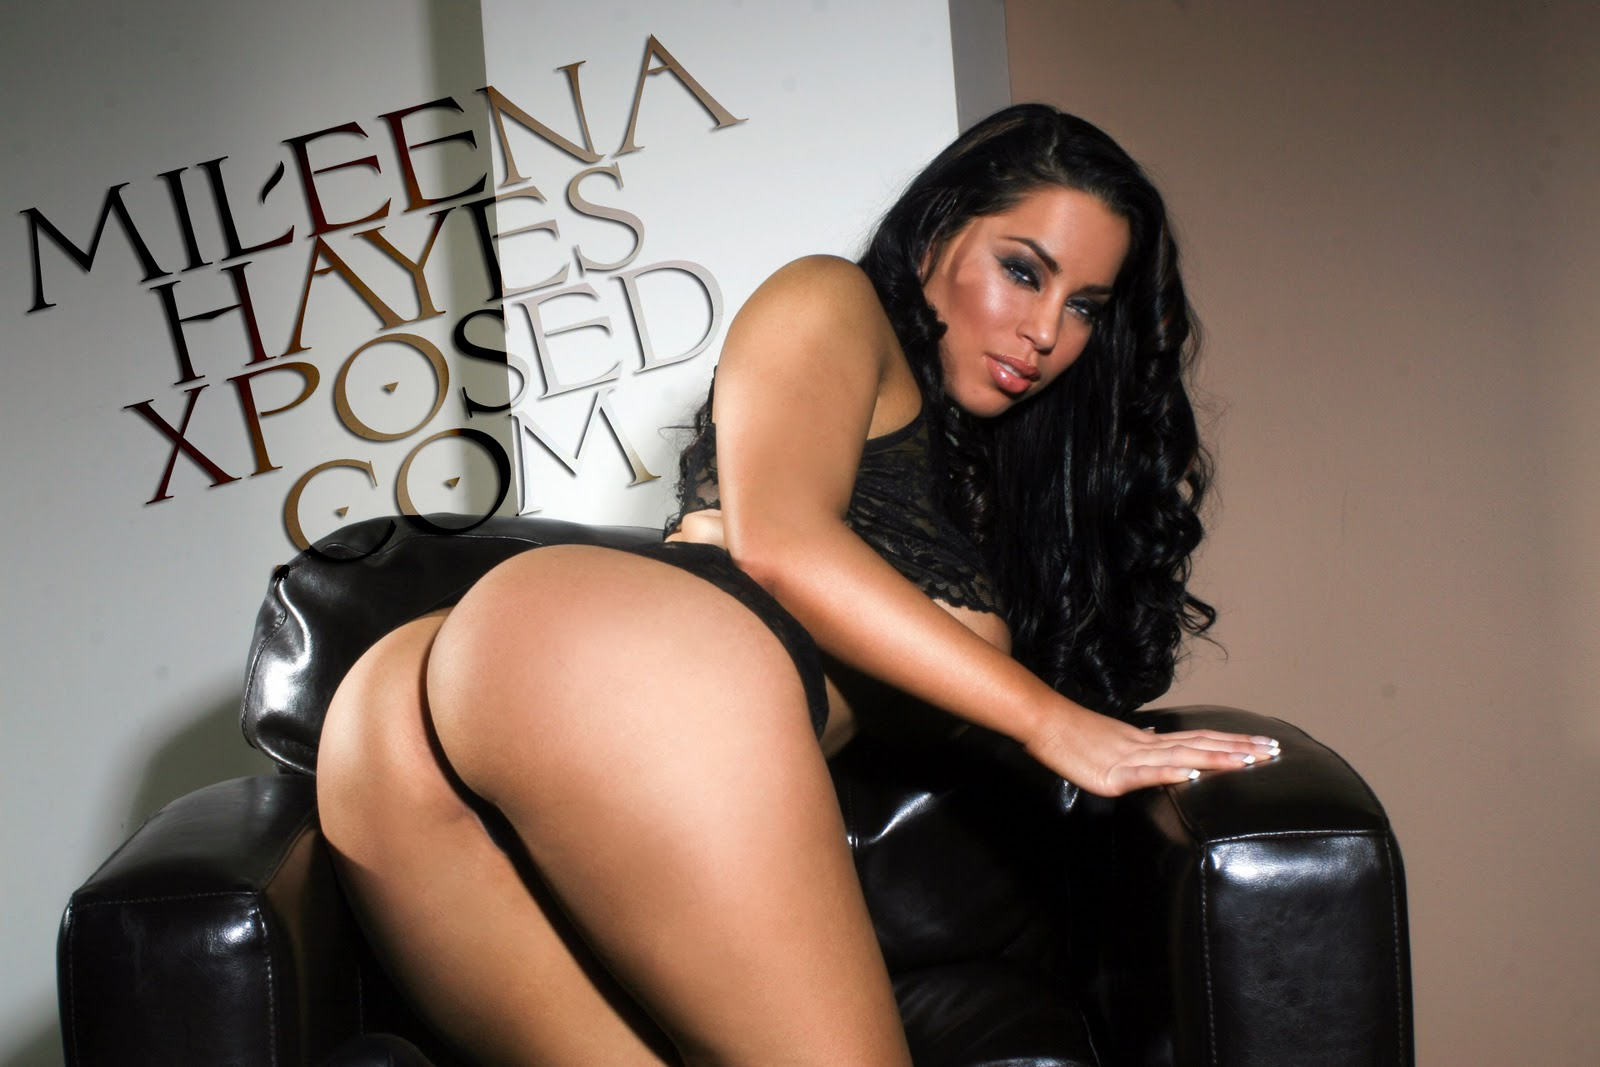 Bubble Butts and More!: Mileena Hayes!